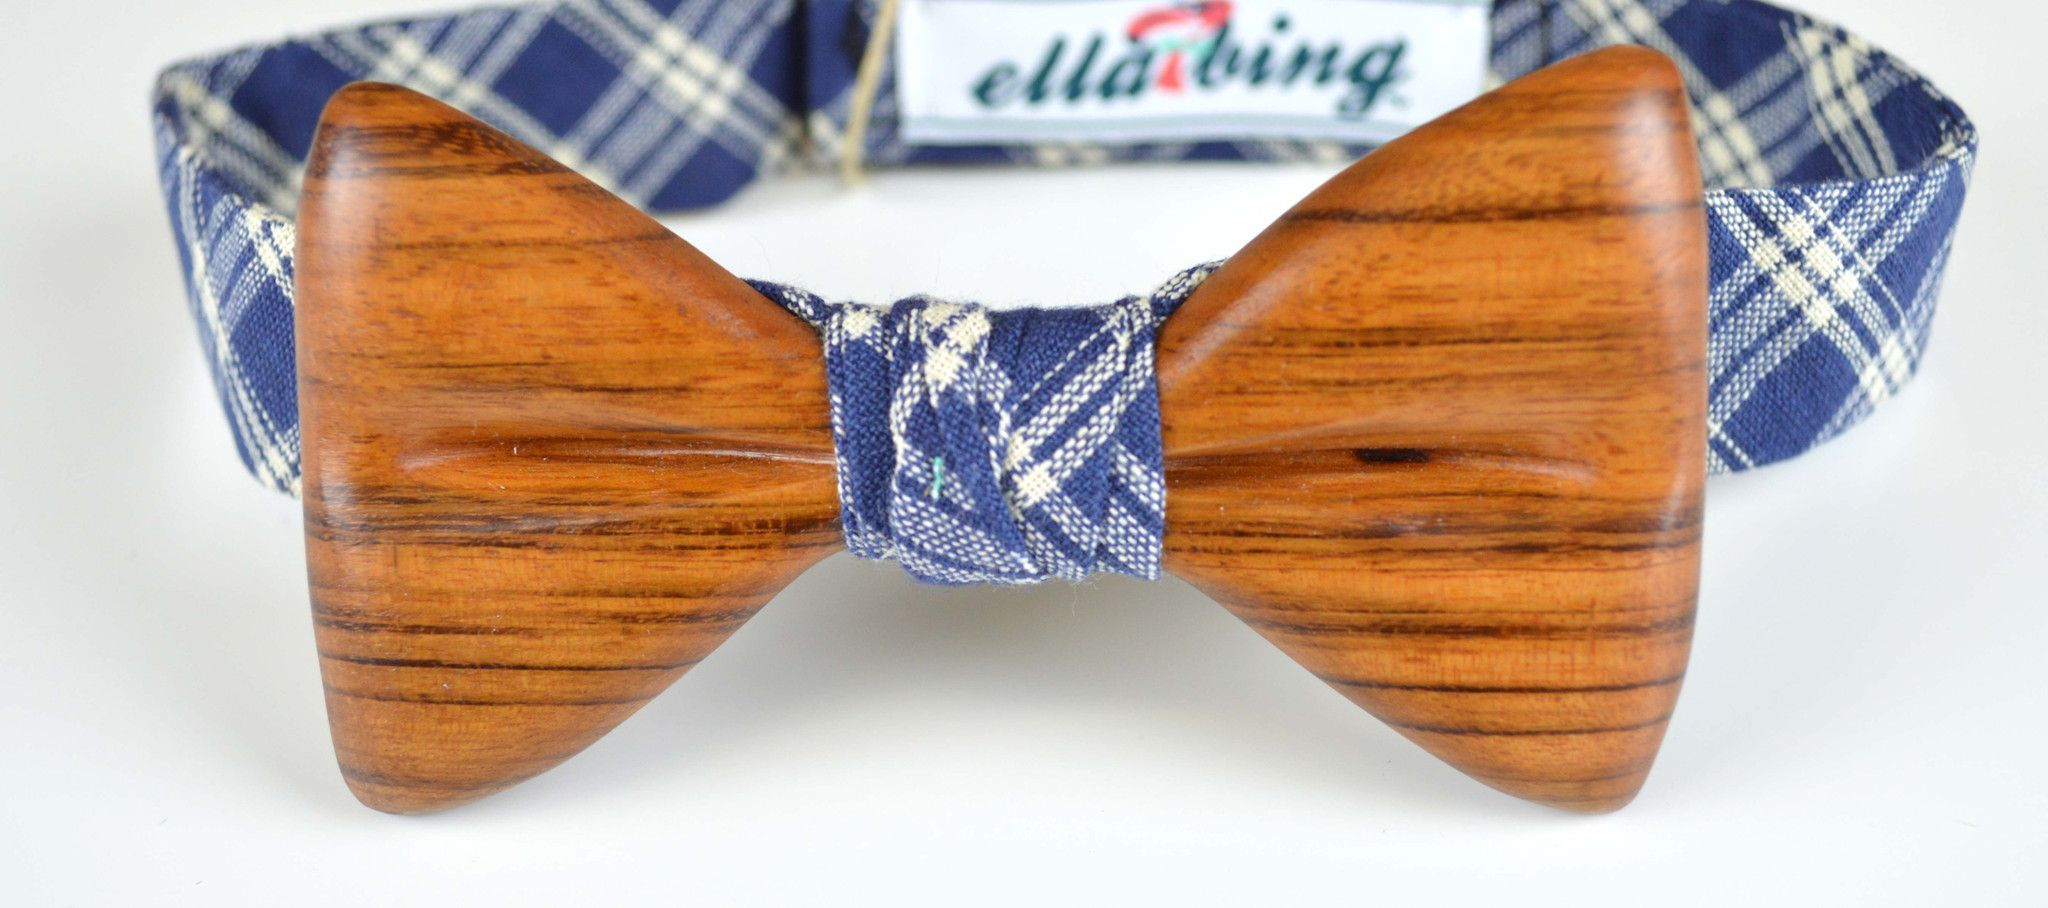 The Ozzie Ovadiah Wooden Bow Tie